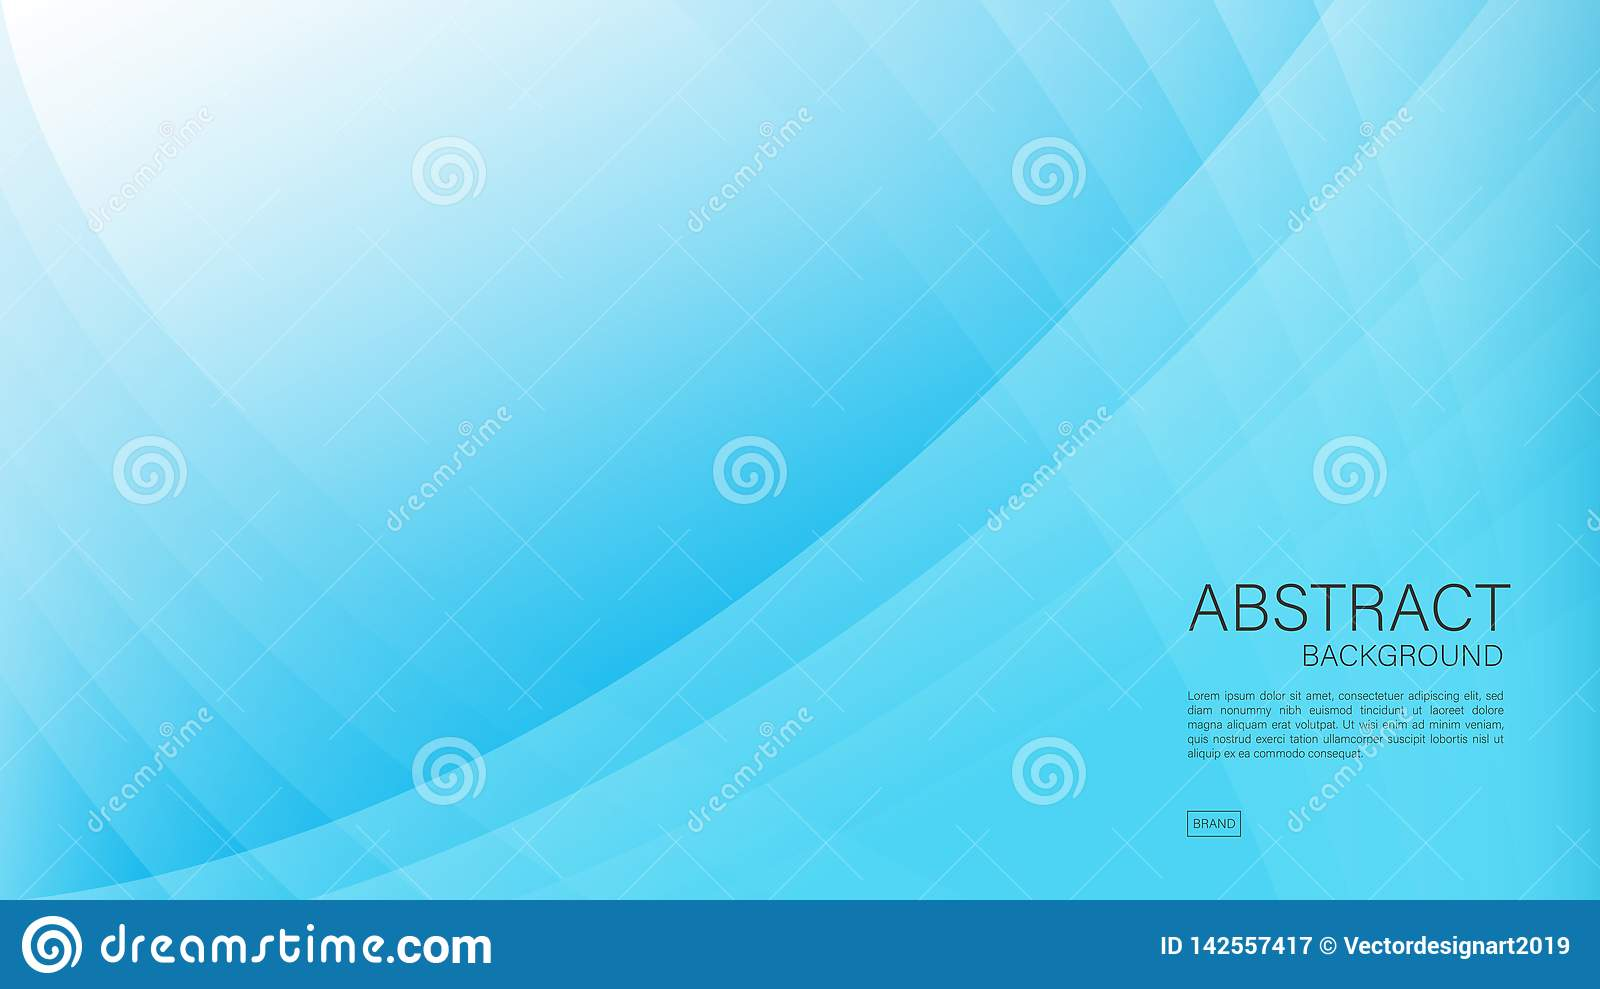 Blue abstract background, polygon, Geometric vector, graphic, Minimal Texture, cover design, flyer template, banner, web page